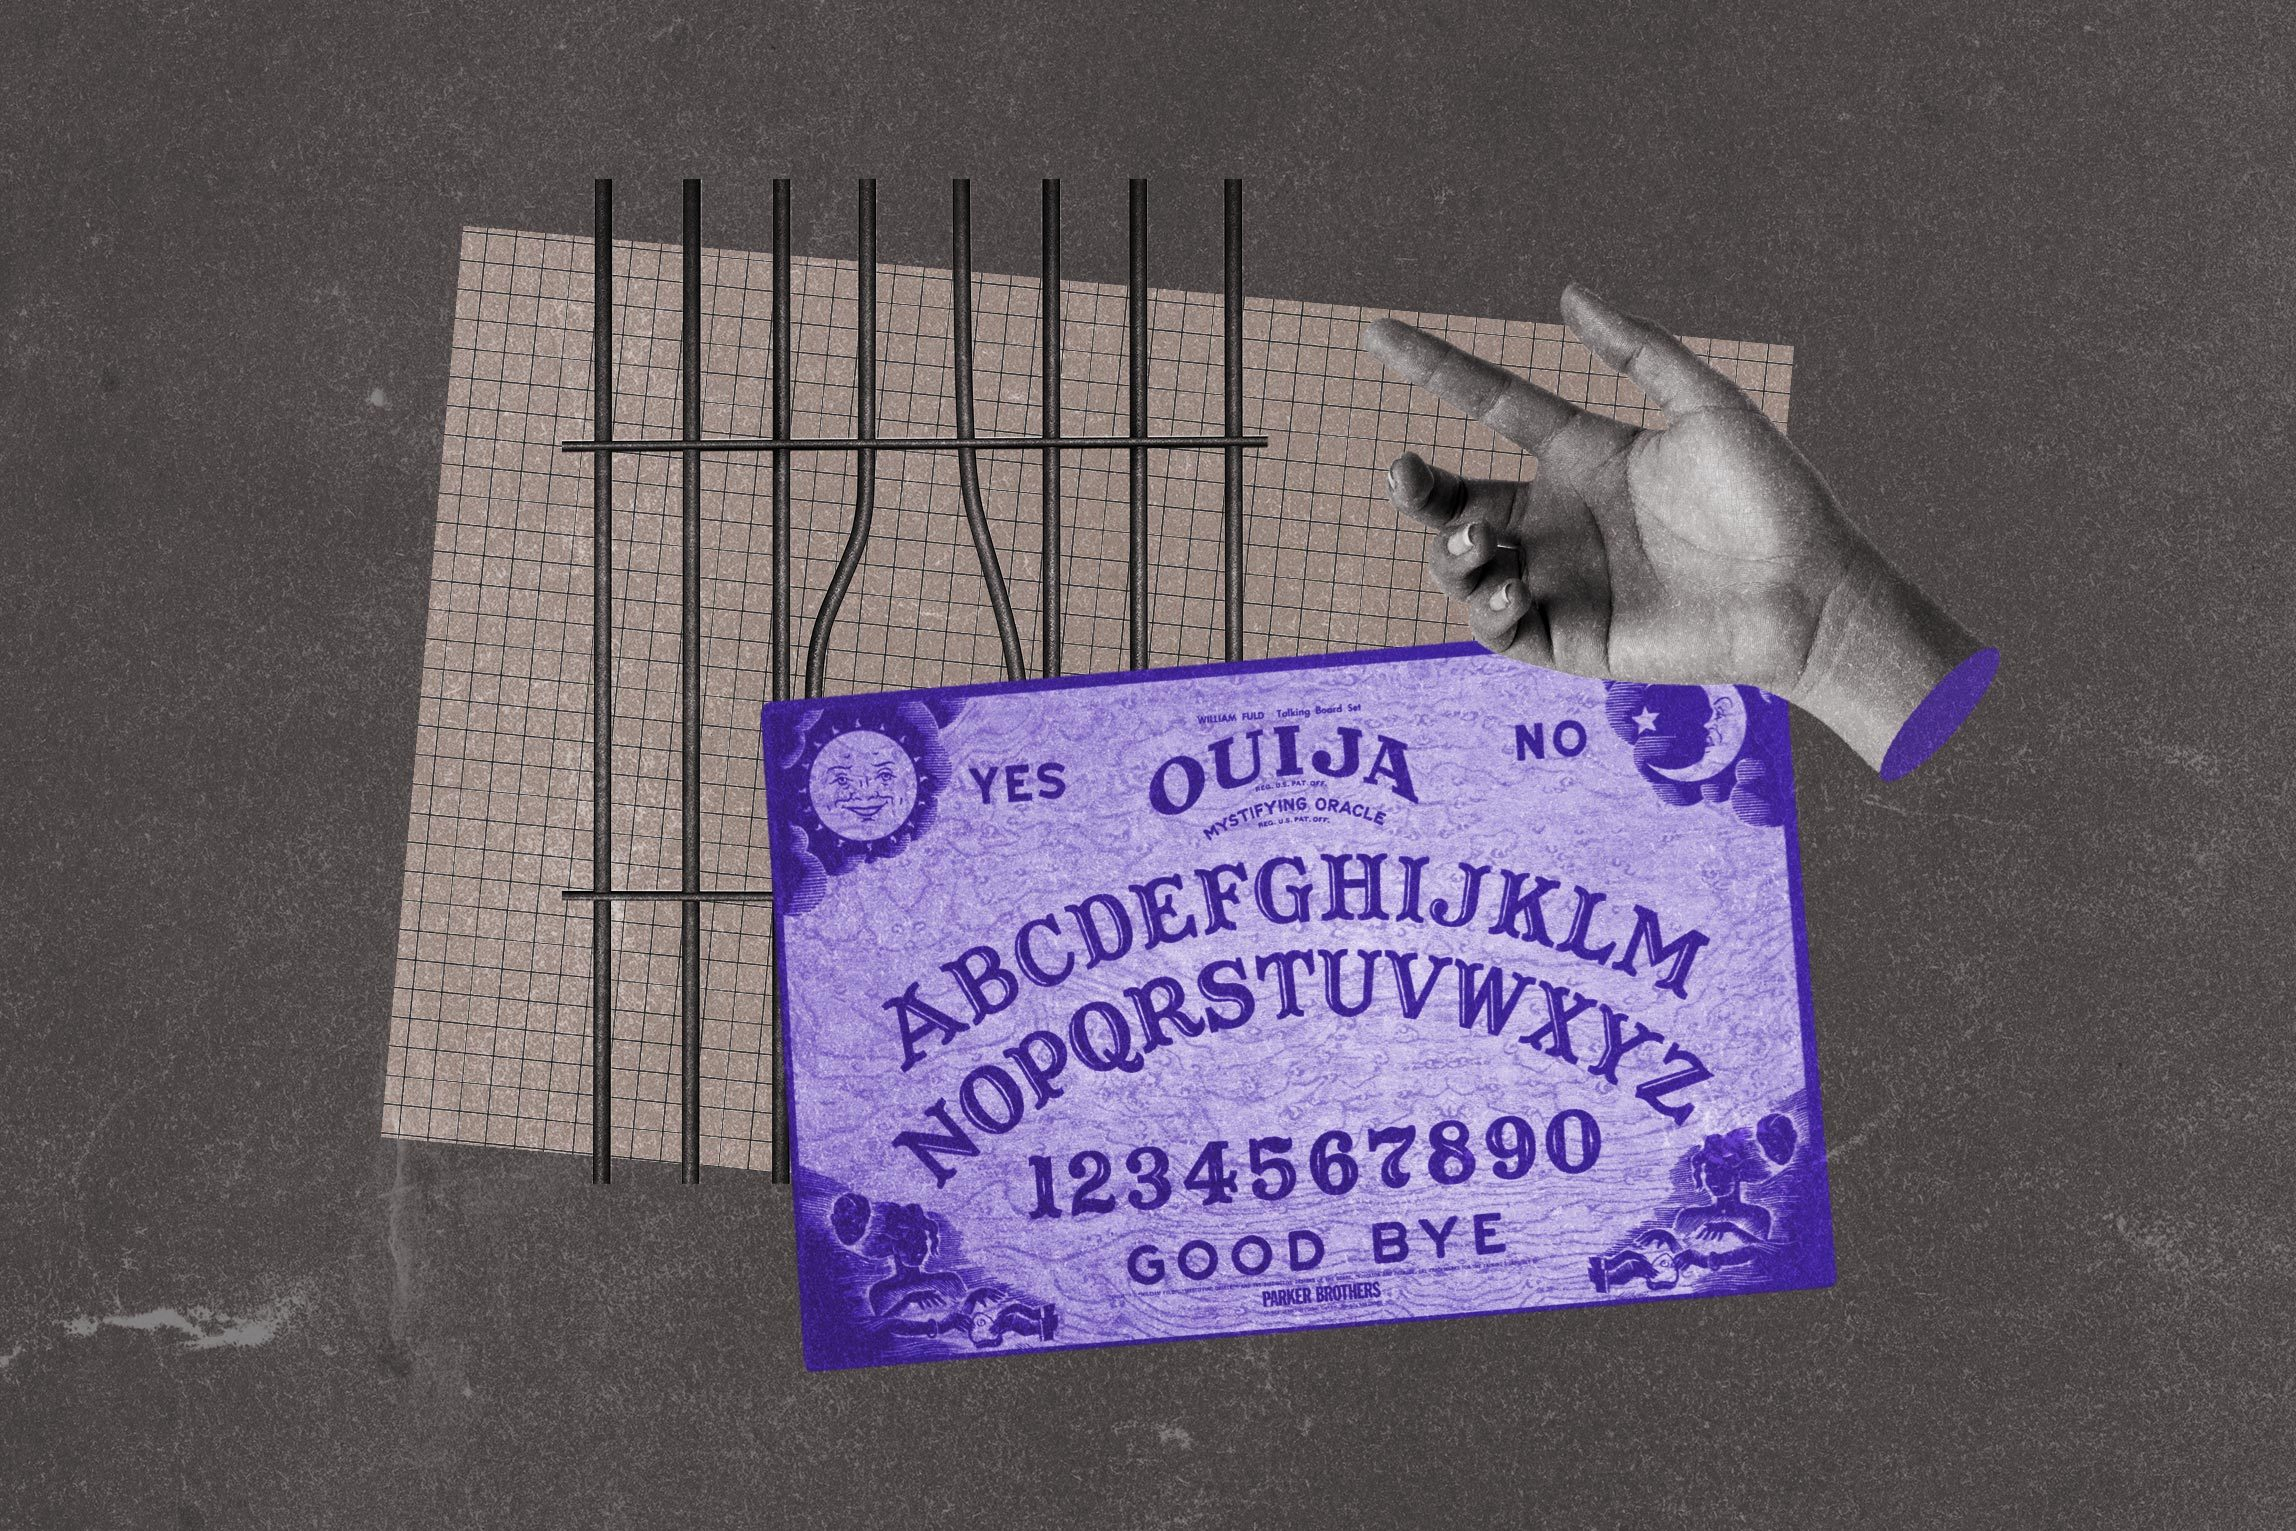 Collage of prison bars and ouija board